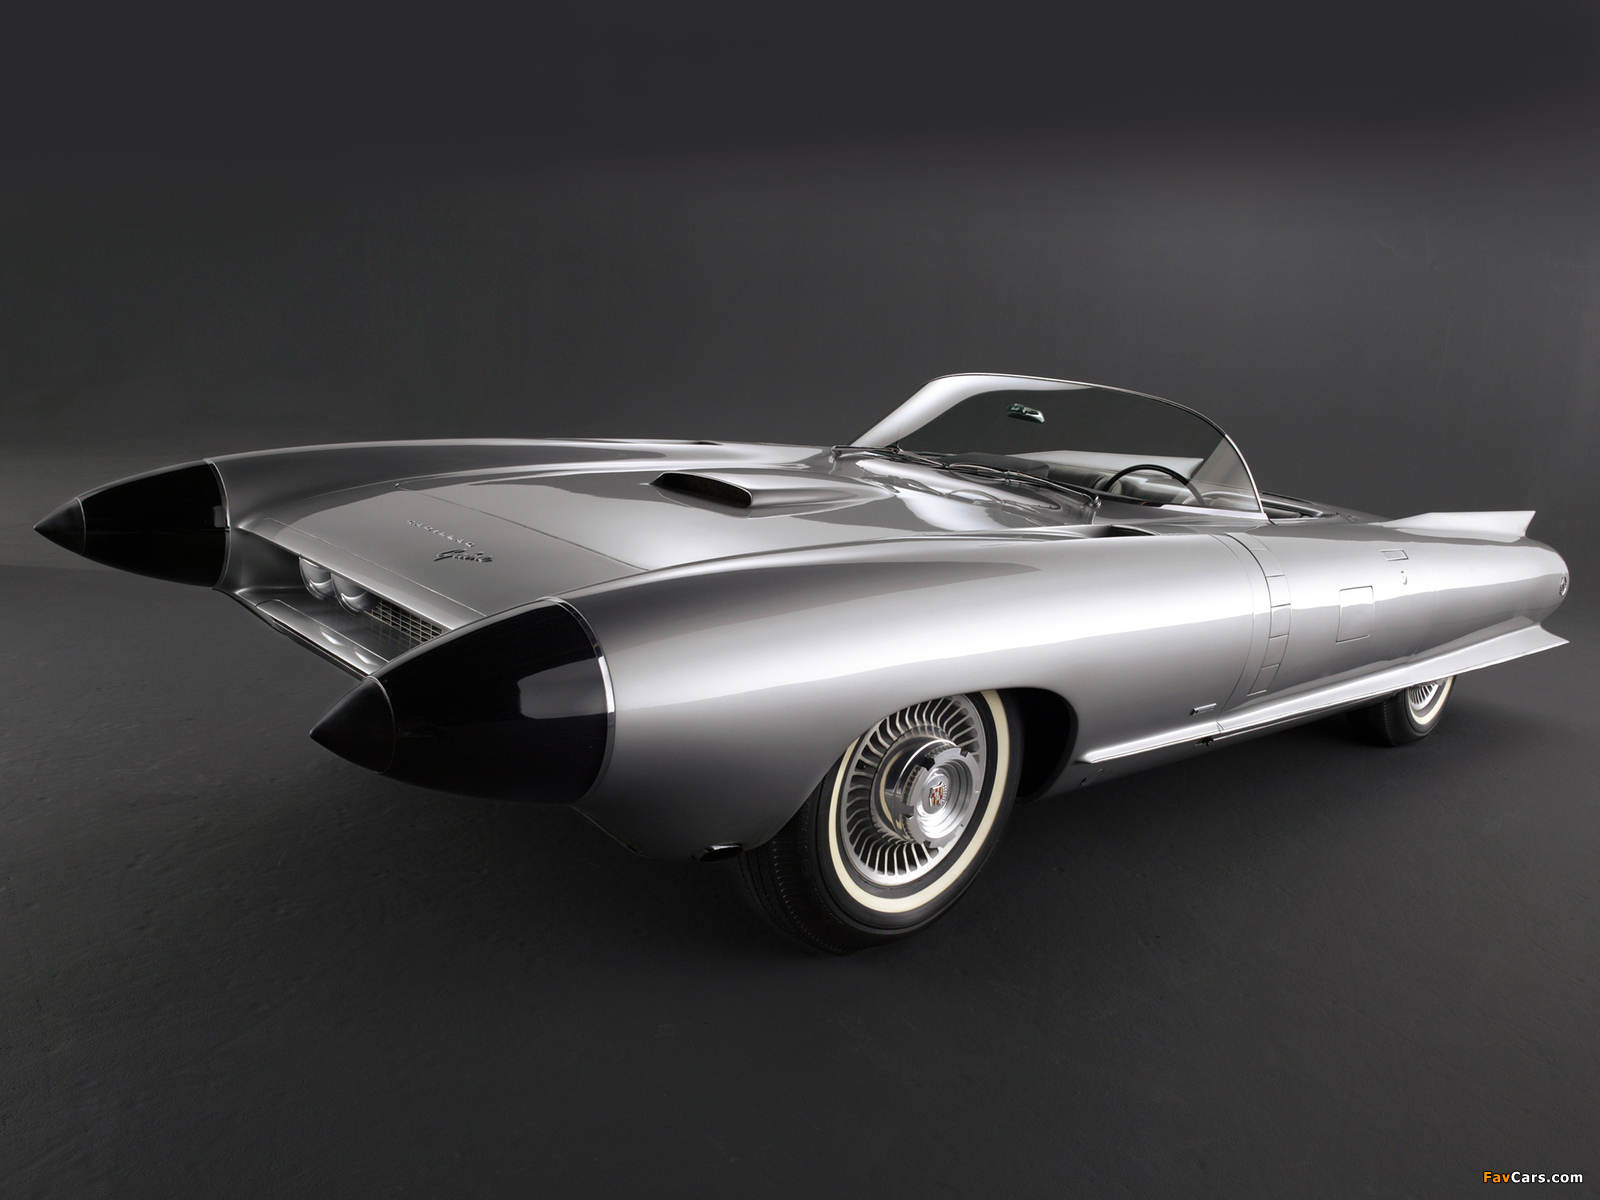 Pictures of Cadillac Cyclone Concept Car 1959 (1600 x 1200)